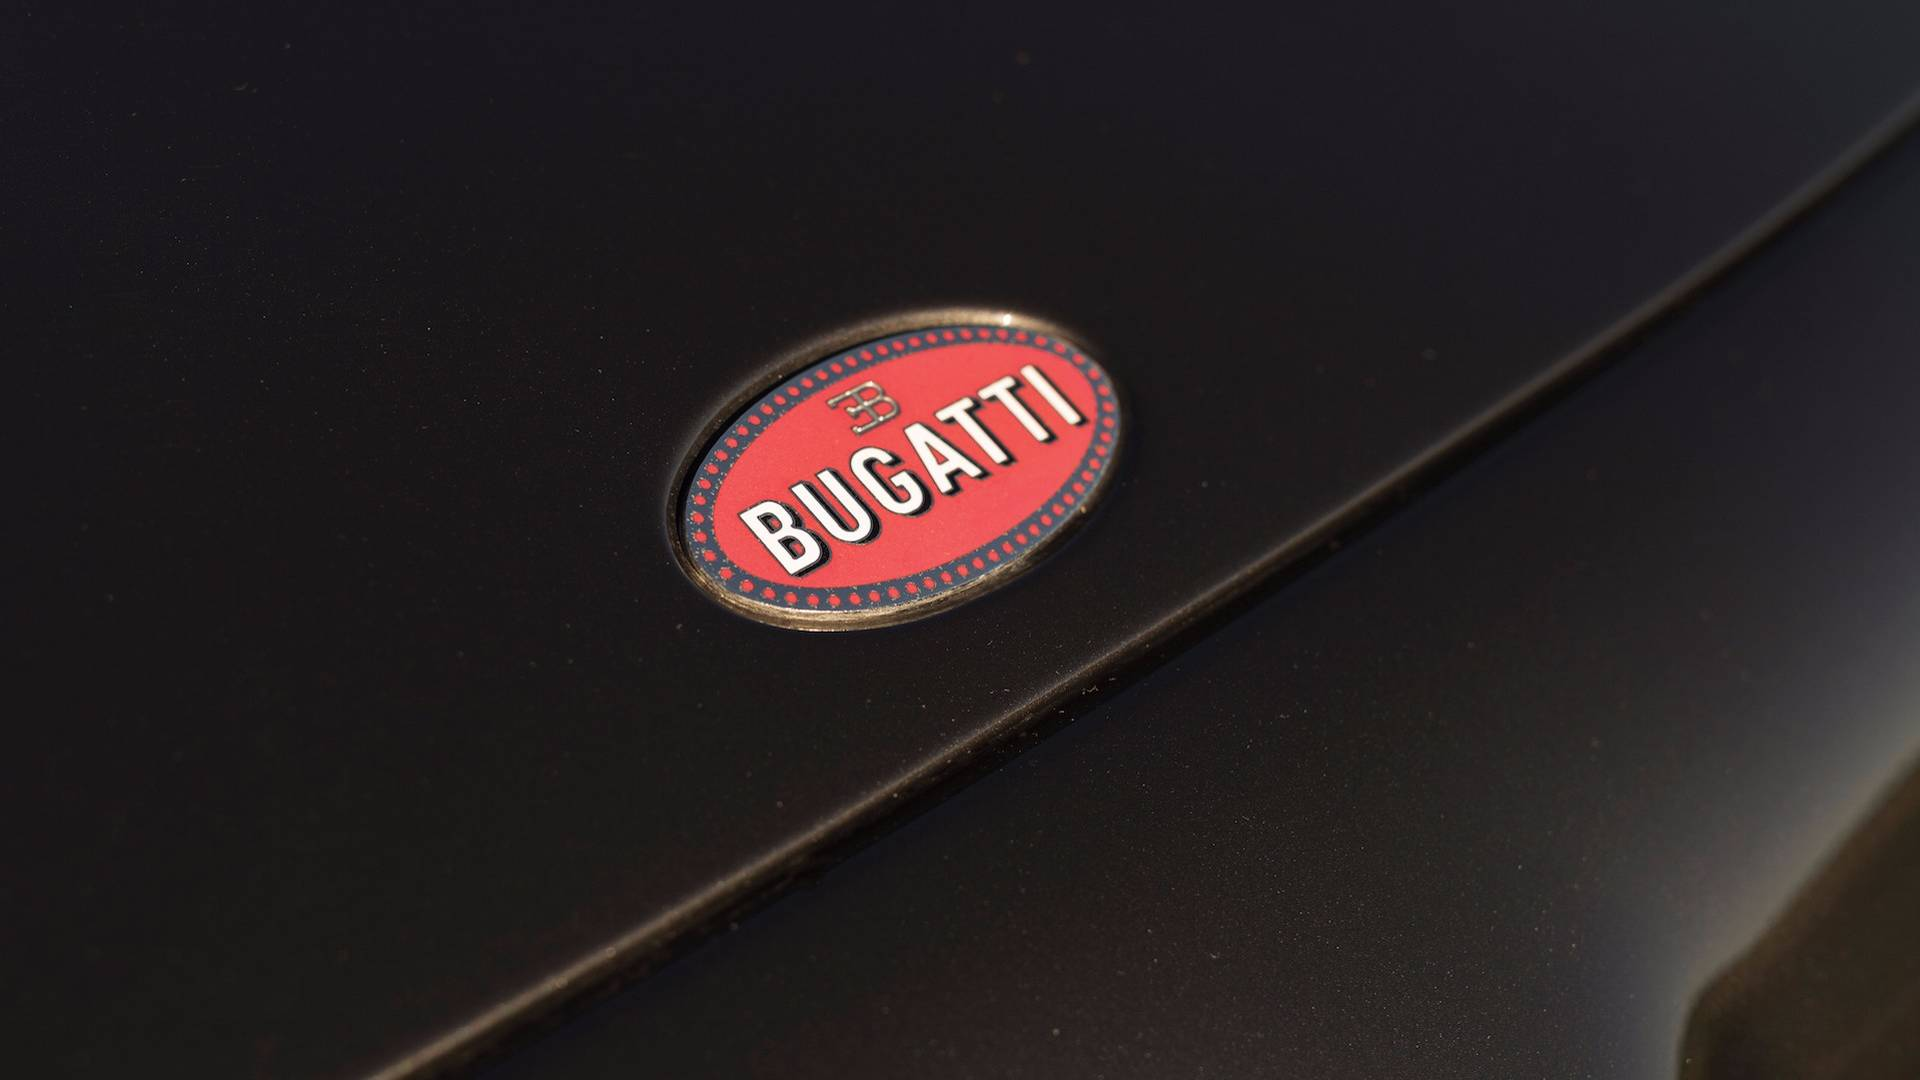 1993-bugatti-eb110-auction (13)